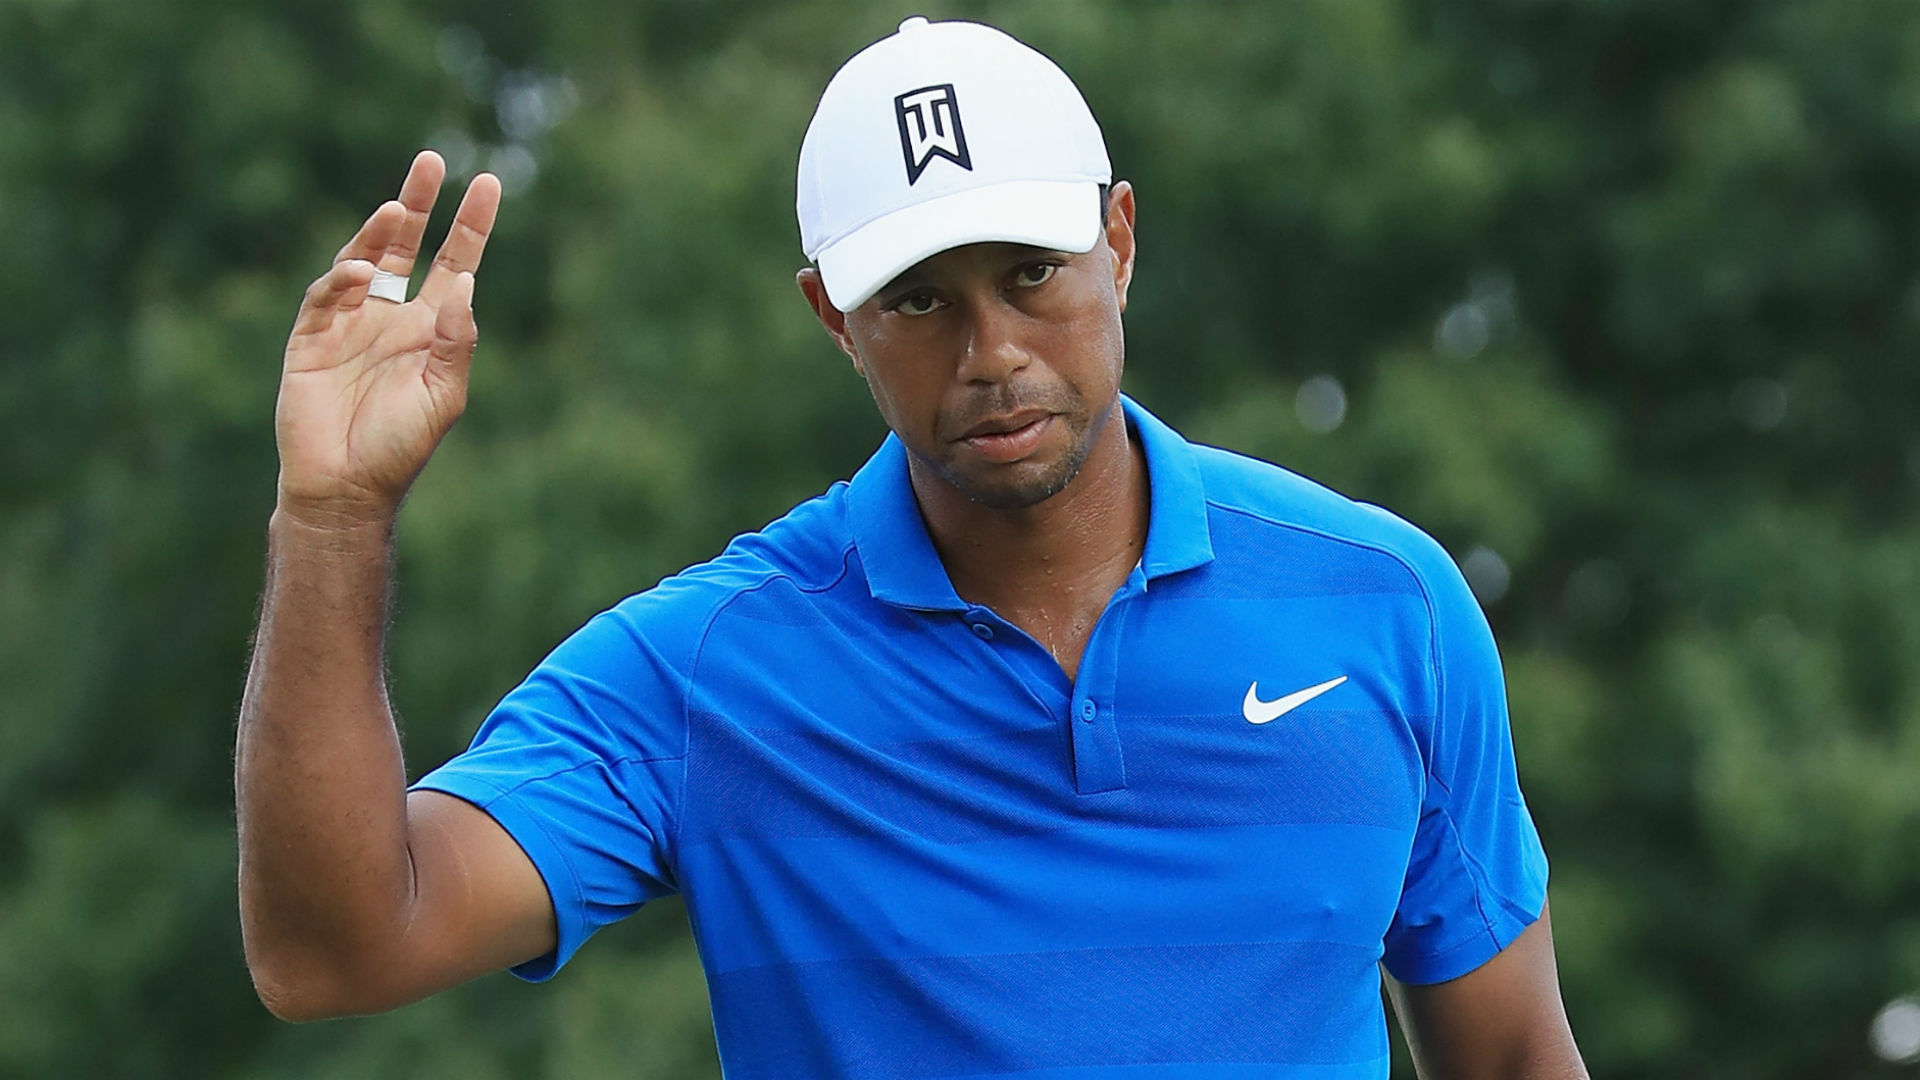 Tiger Woods' title drought ends at last, claims first win since 2013